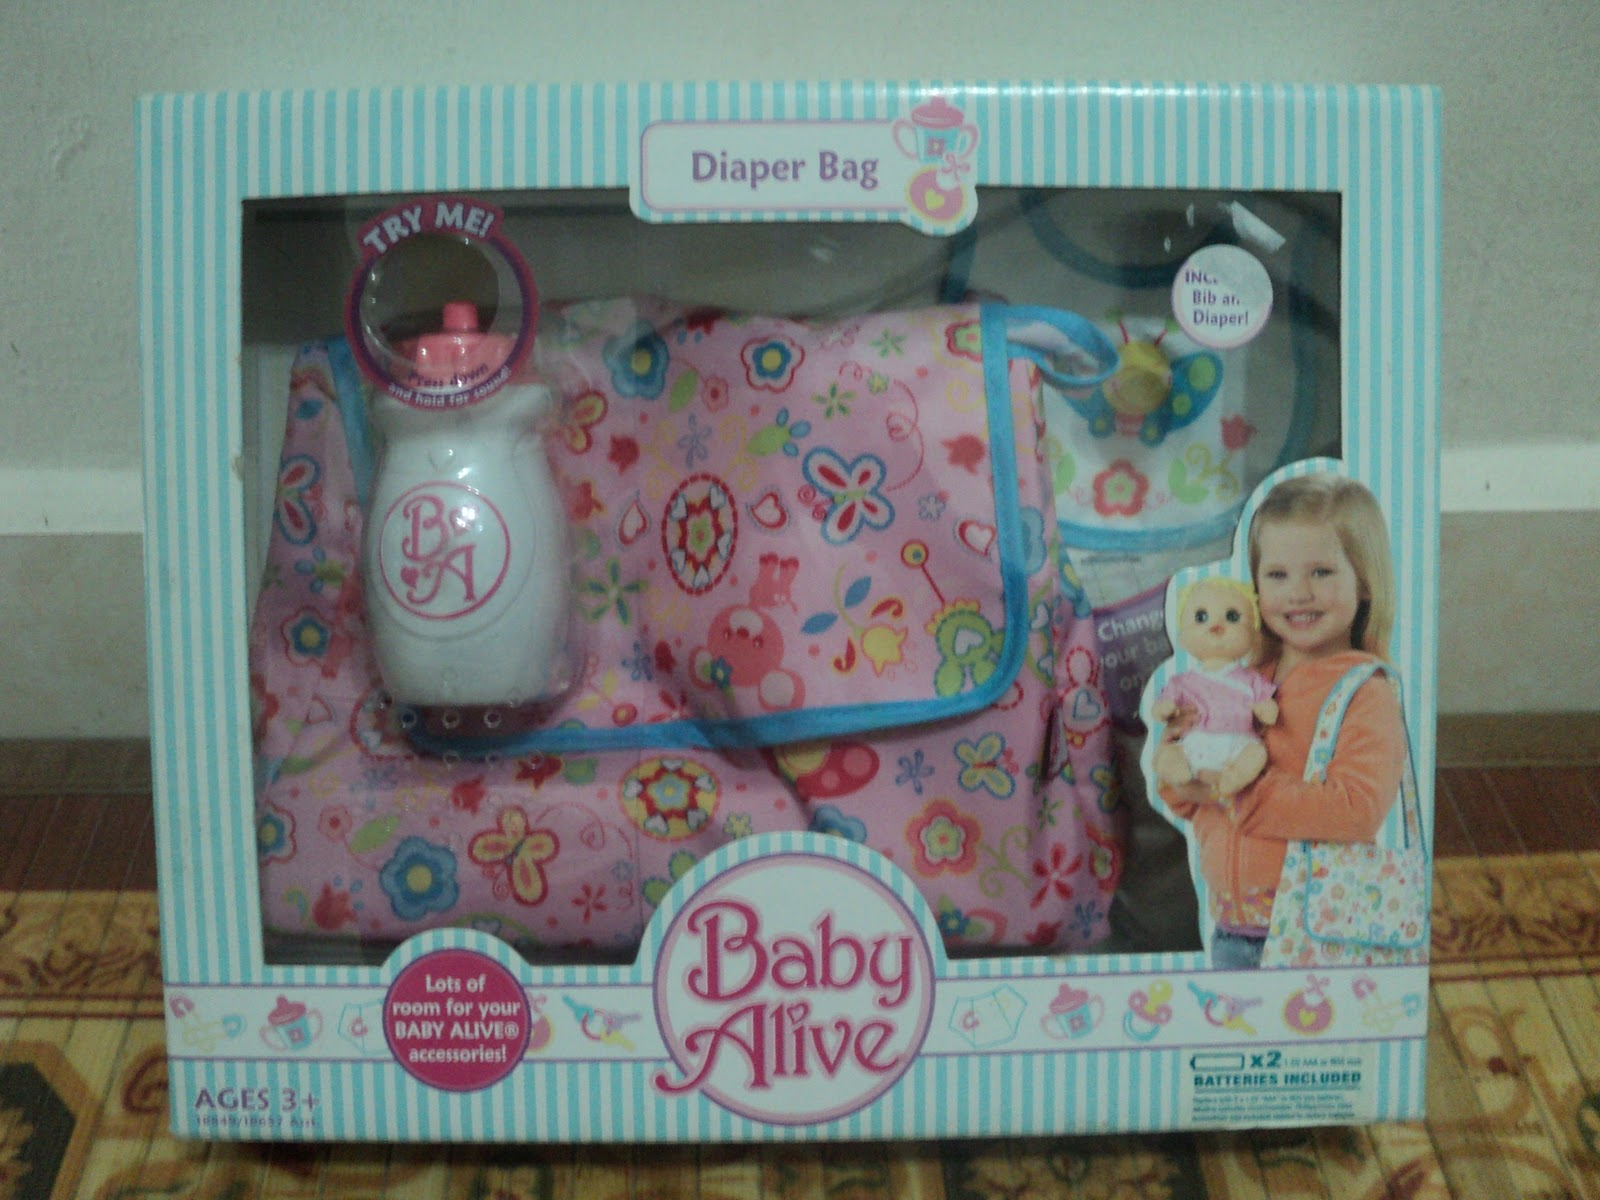 Nurul Azham S Shoppe Baby Alive Diaper Bag With Bib And